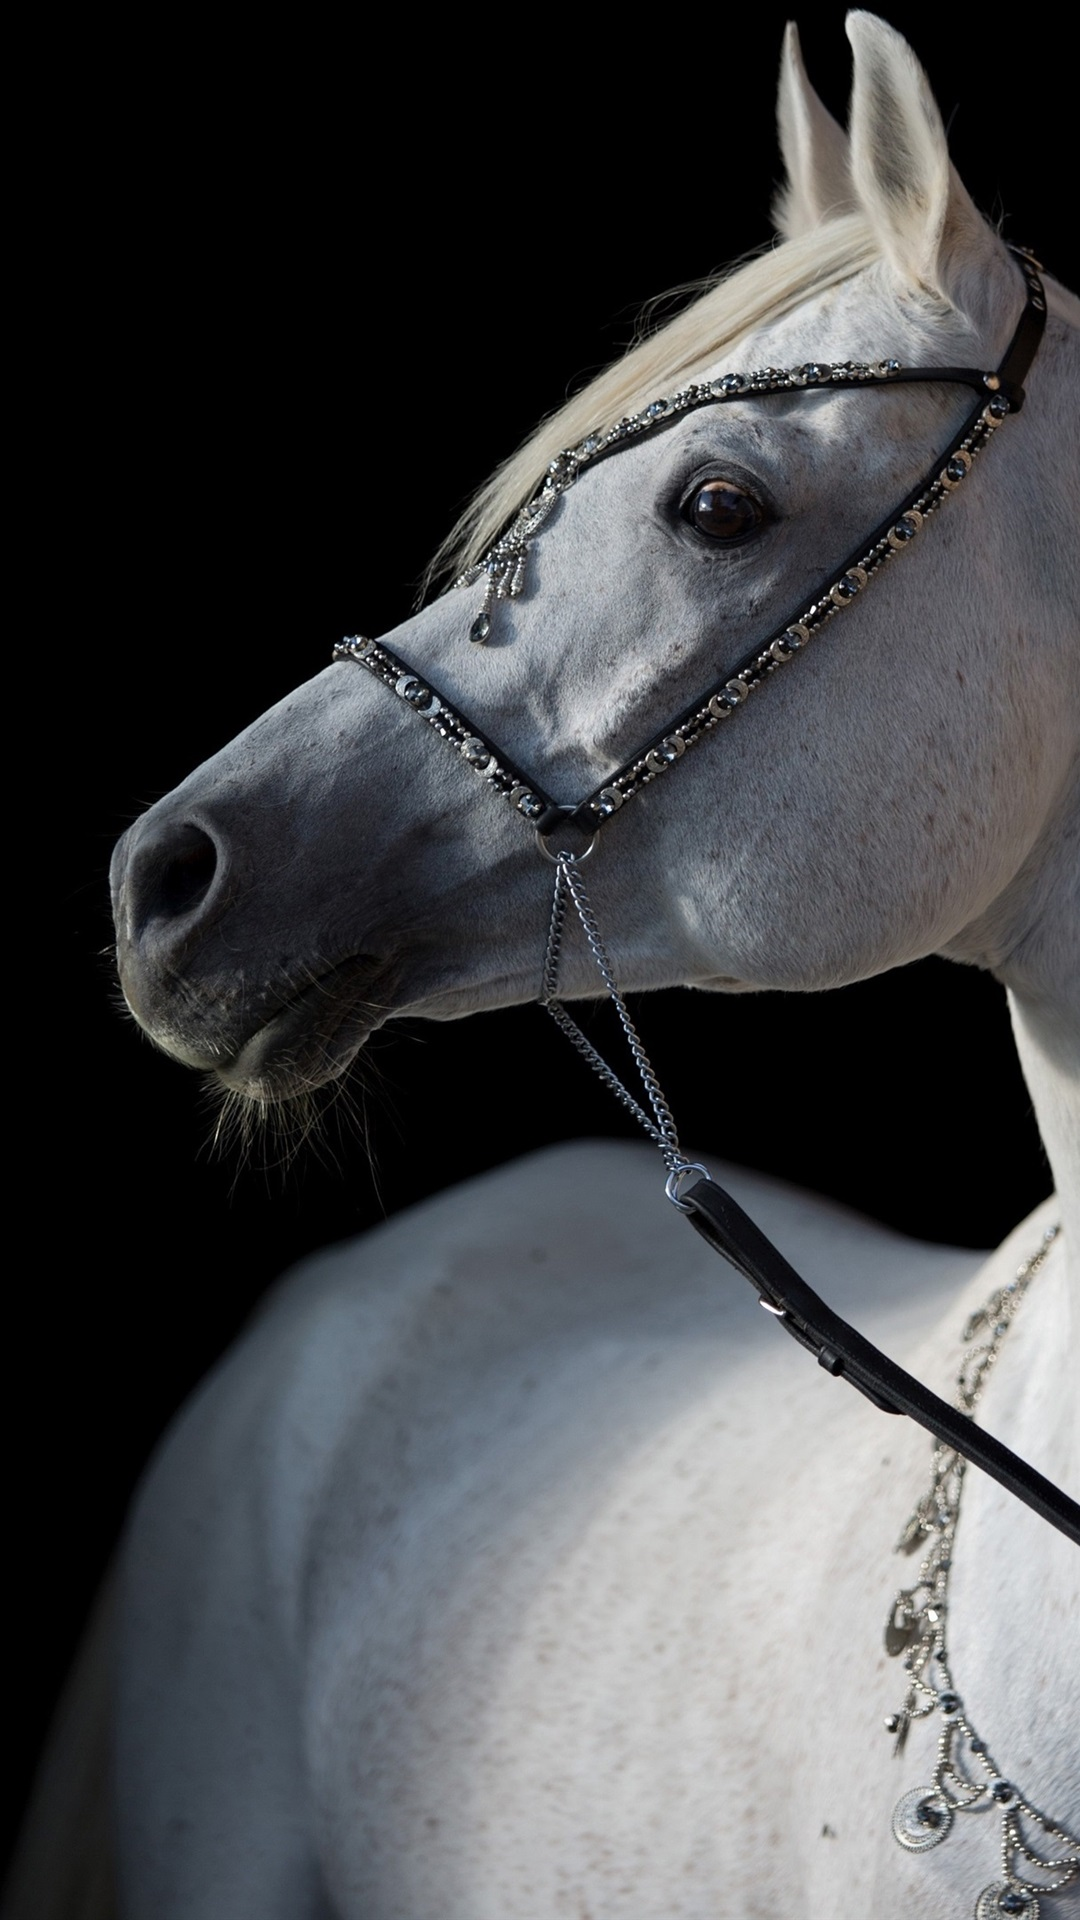 White Horse Black Background 1080x1920 Iphone 8 7 6 6s Plus Wallpaper Background Picture Image